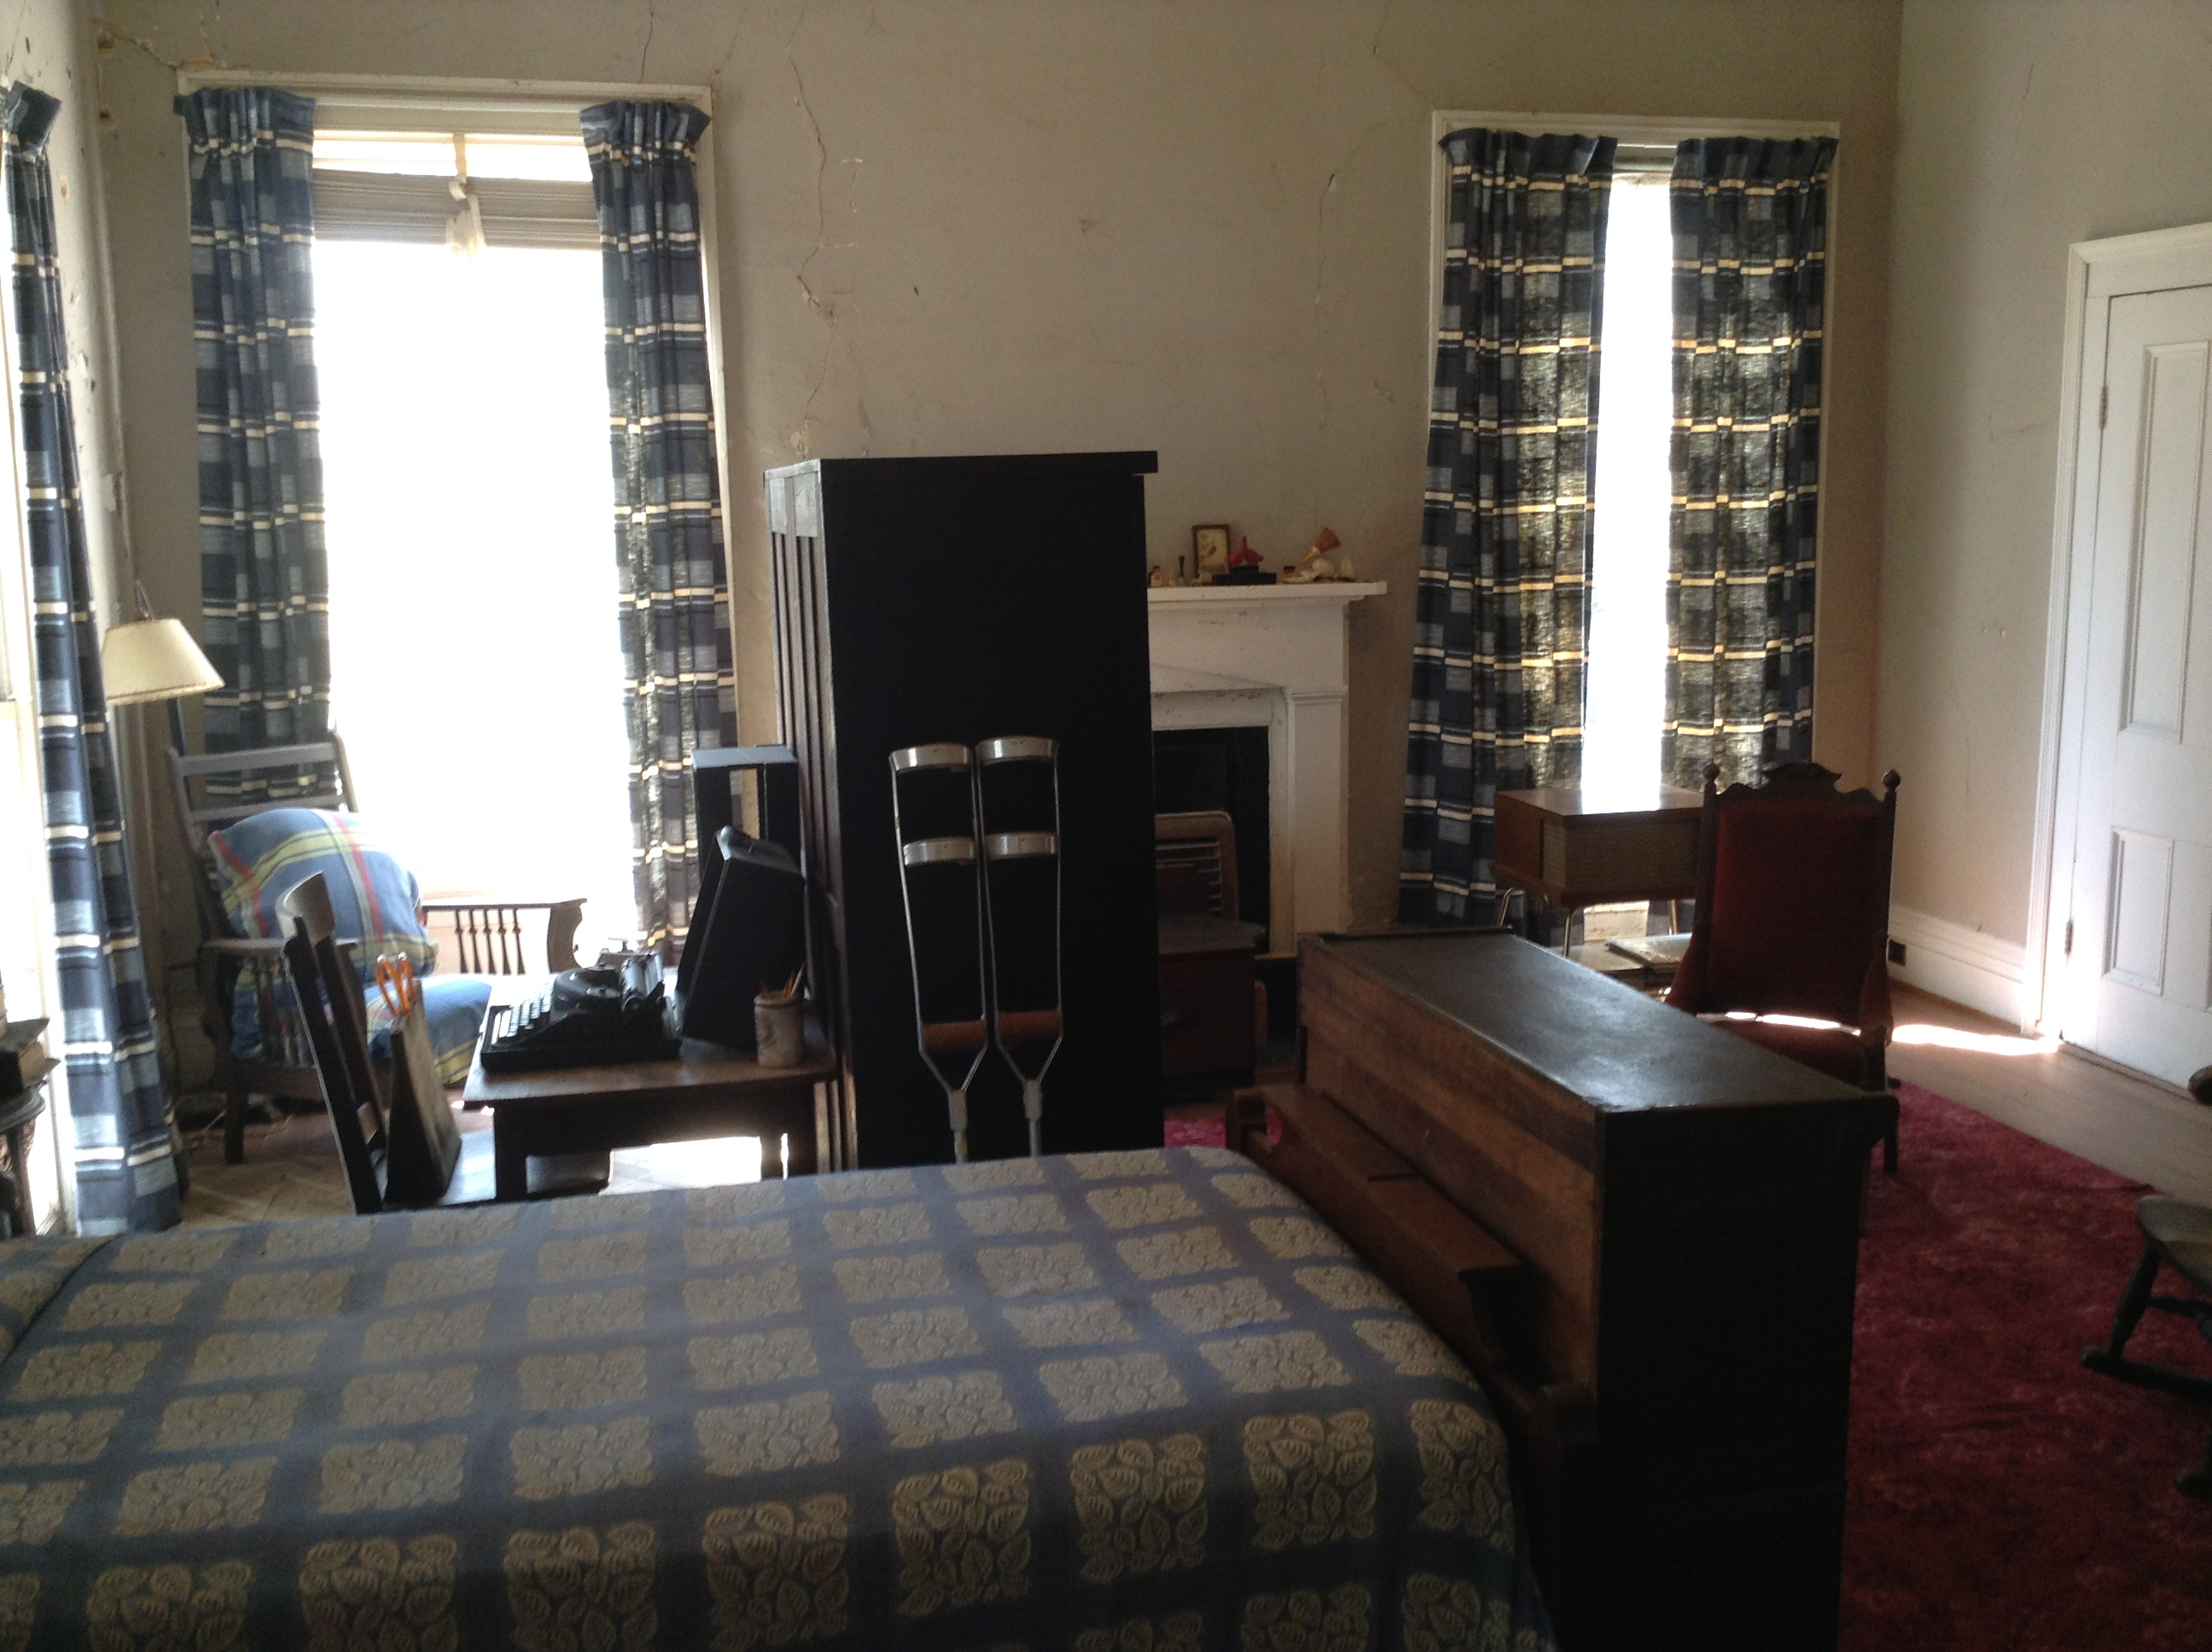 university of leicester staff blog school of english flannery o flannery o connor s bedroom